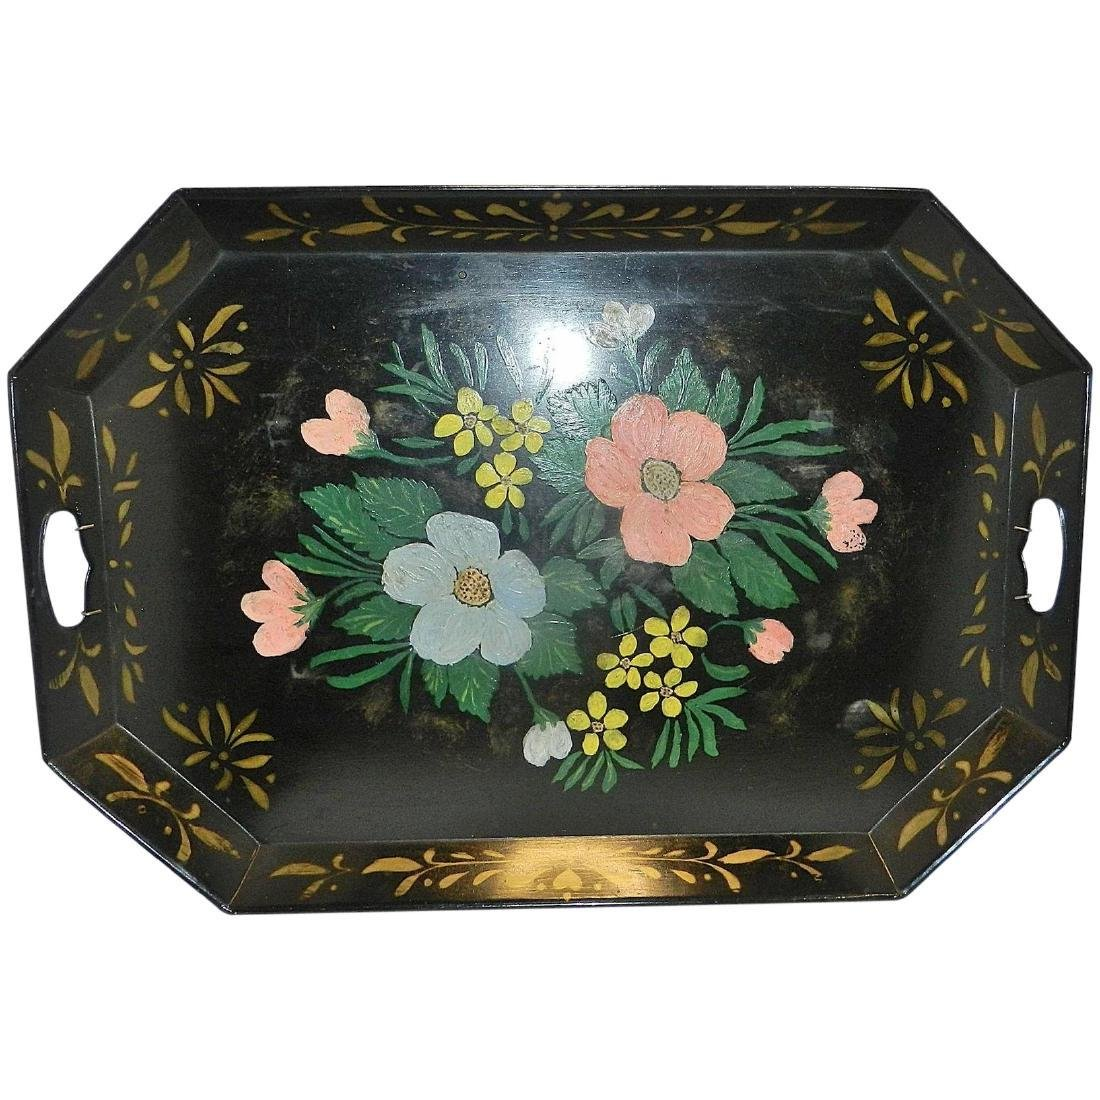 "Vintage Metal Hand Painted Tole Serving Tray 26"" x 13"""